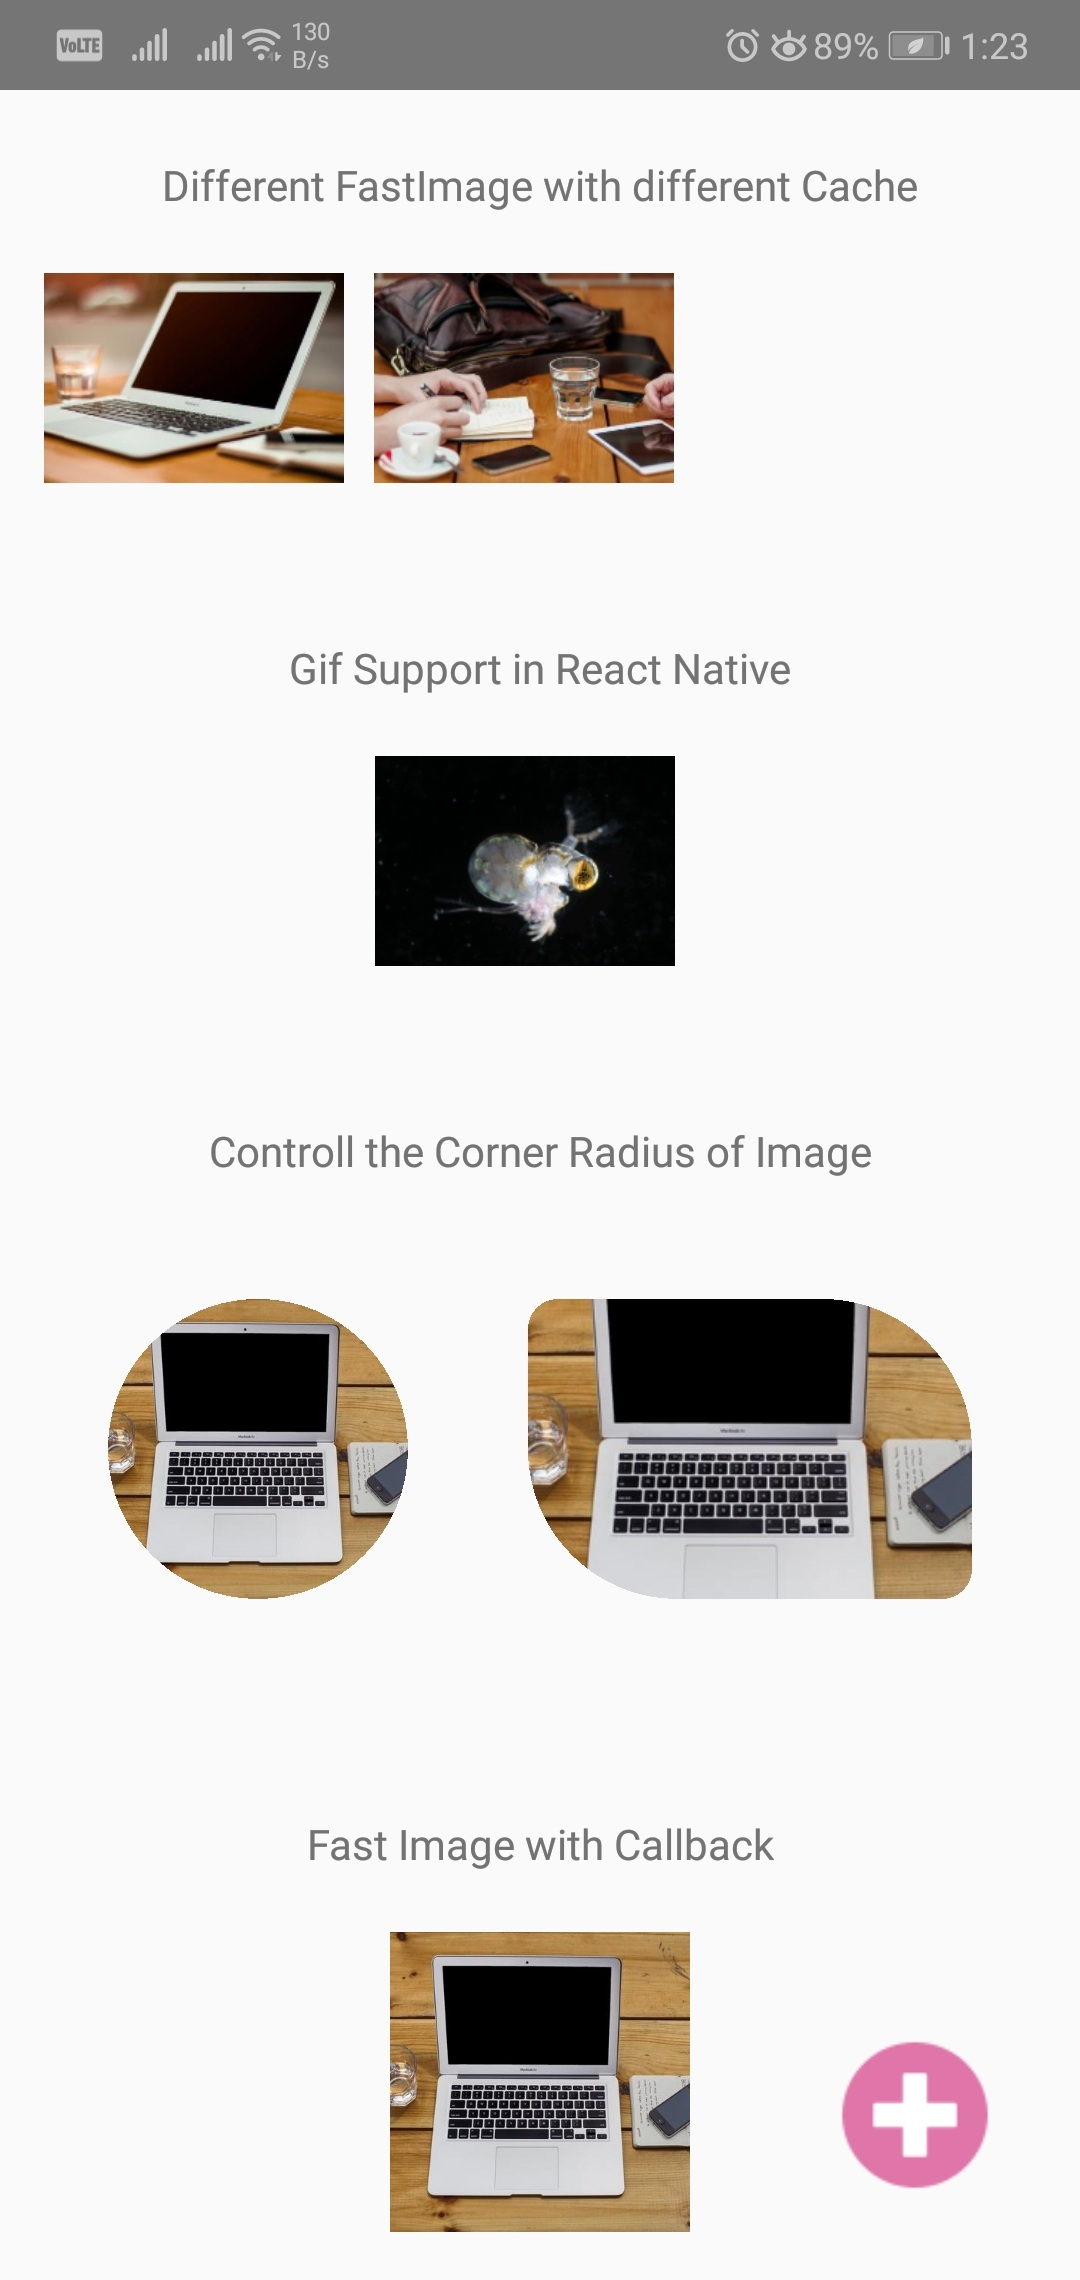 Fast Speed Image Loading using React Native Fast Image